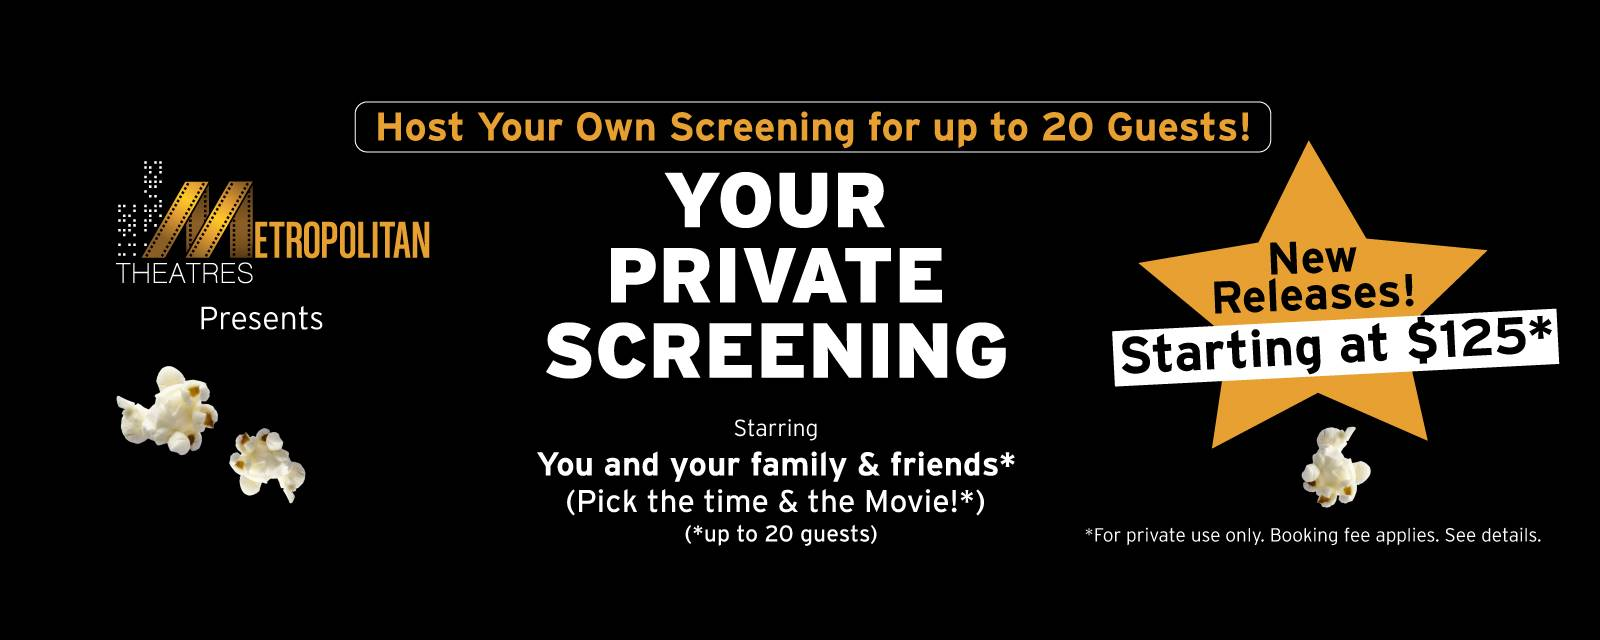 Your Private Screening